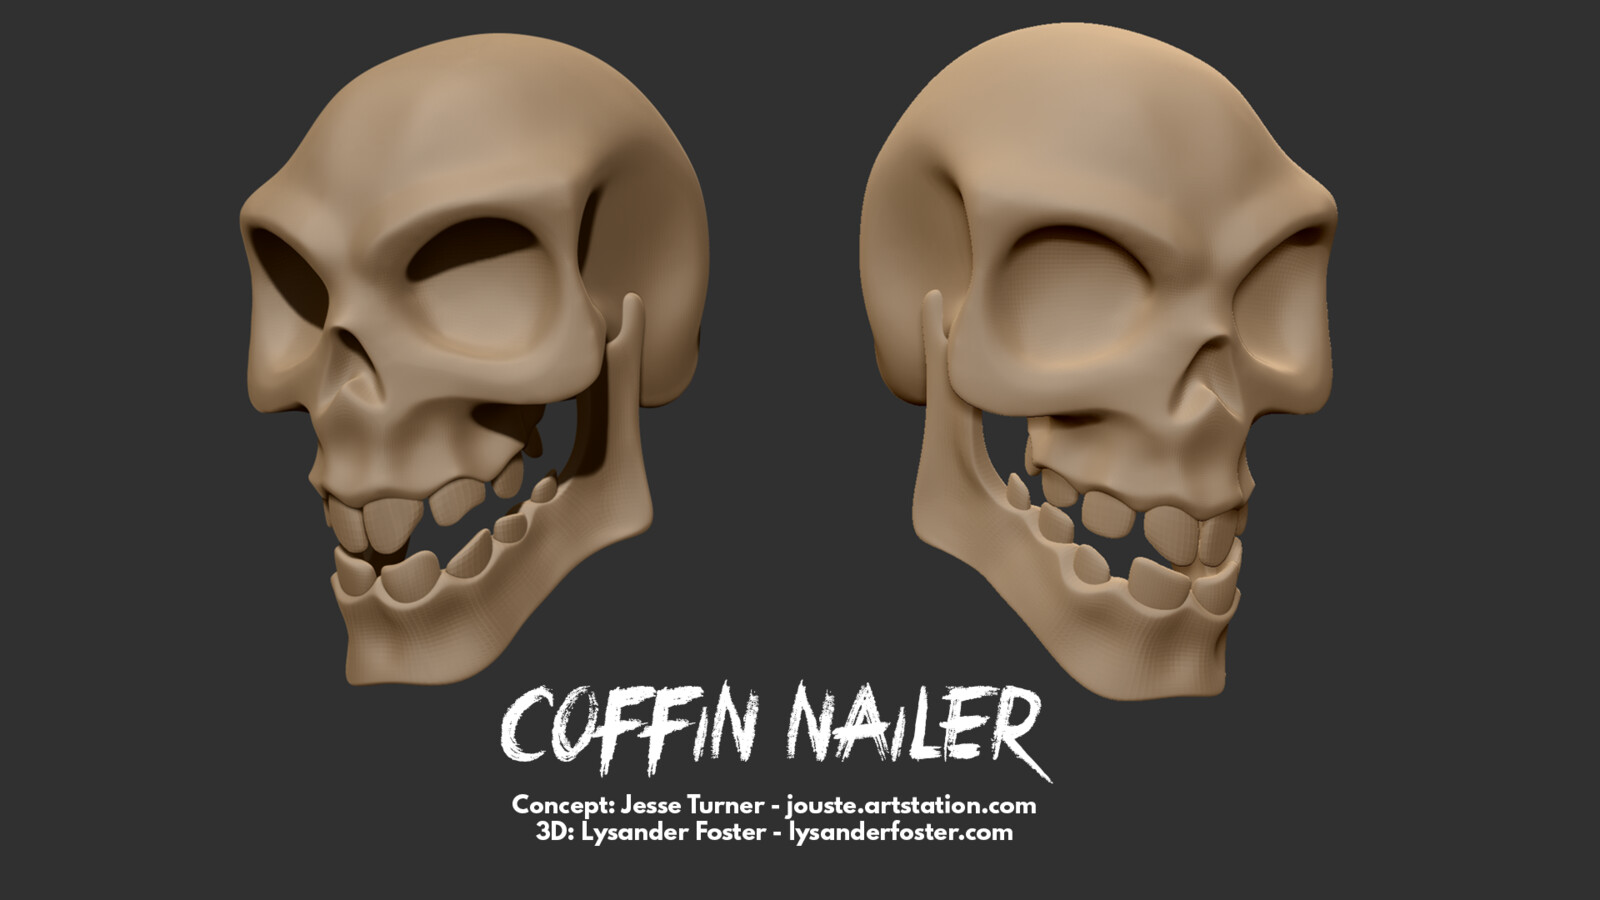 As the skull sculpt came out so nicely, I thought I'd include a render from Zbrush just for it. Starting from a super basic basemesh was helpful, but the lower jaw and seating teeth inside was by far the hardest bit!